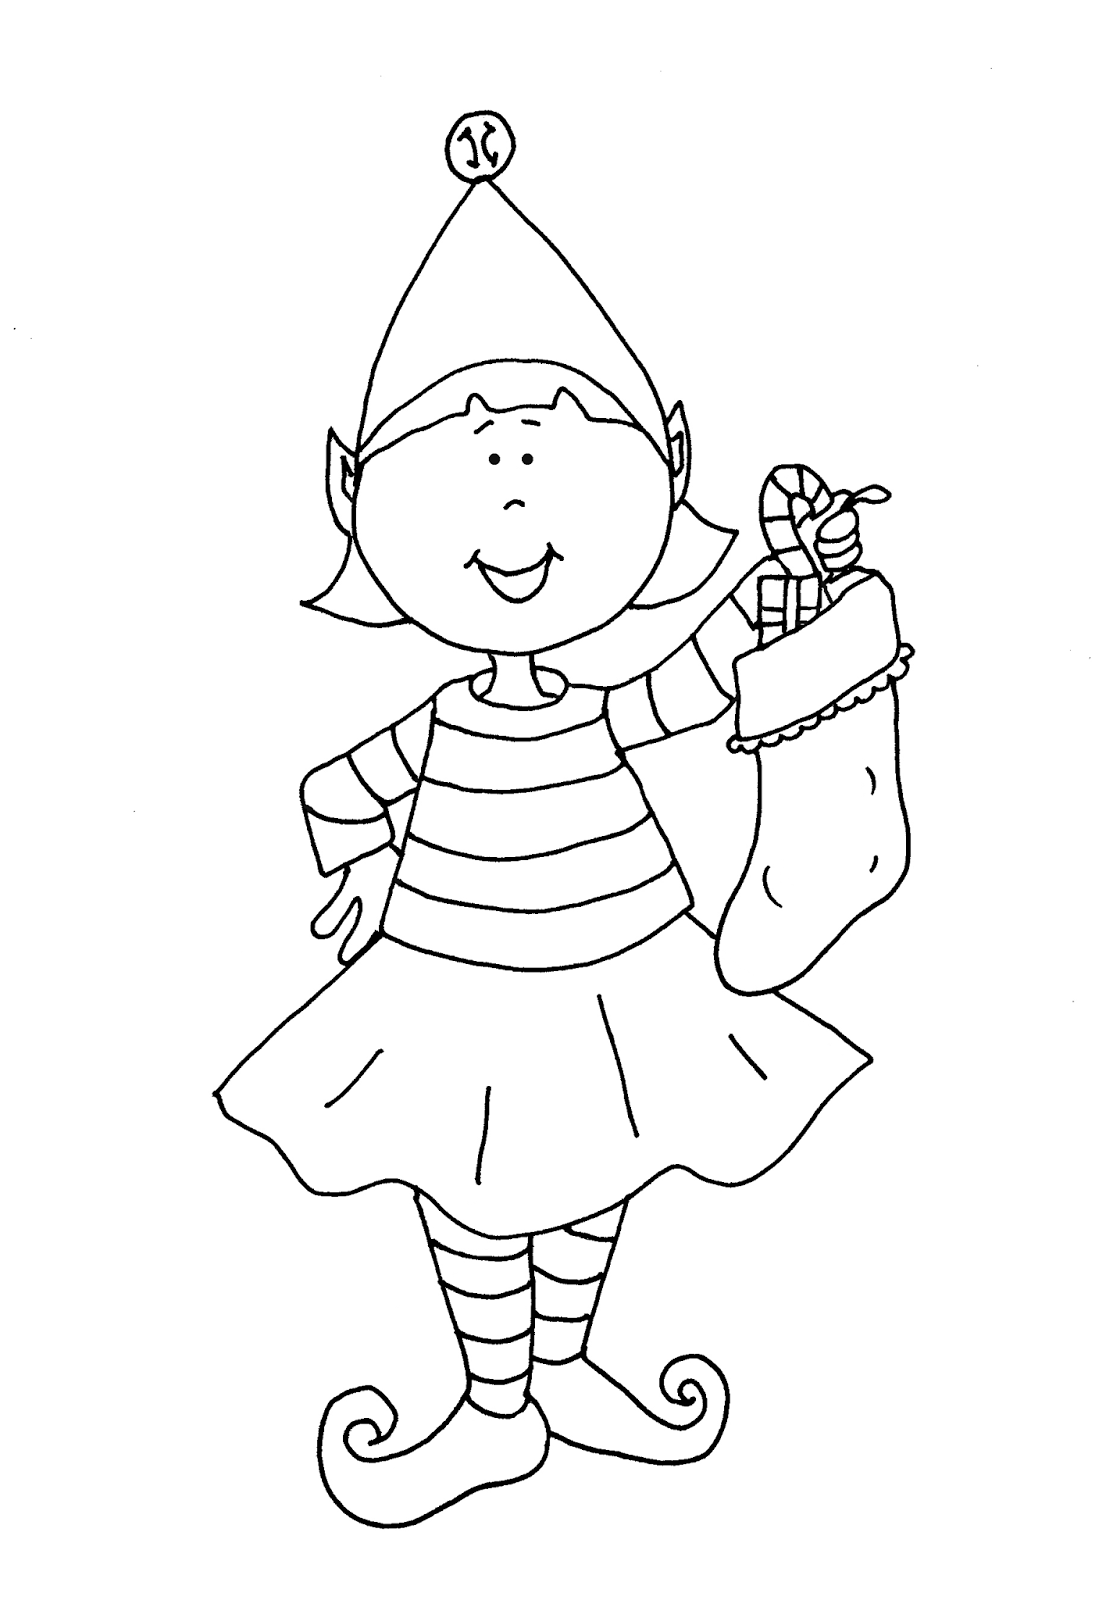 elf-on-the-shelf-coloring-page-0011-q1